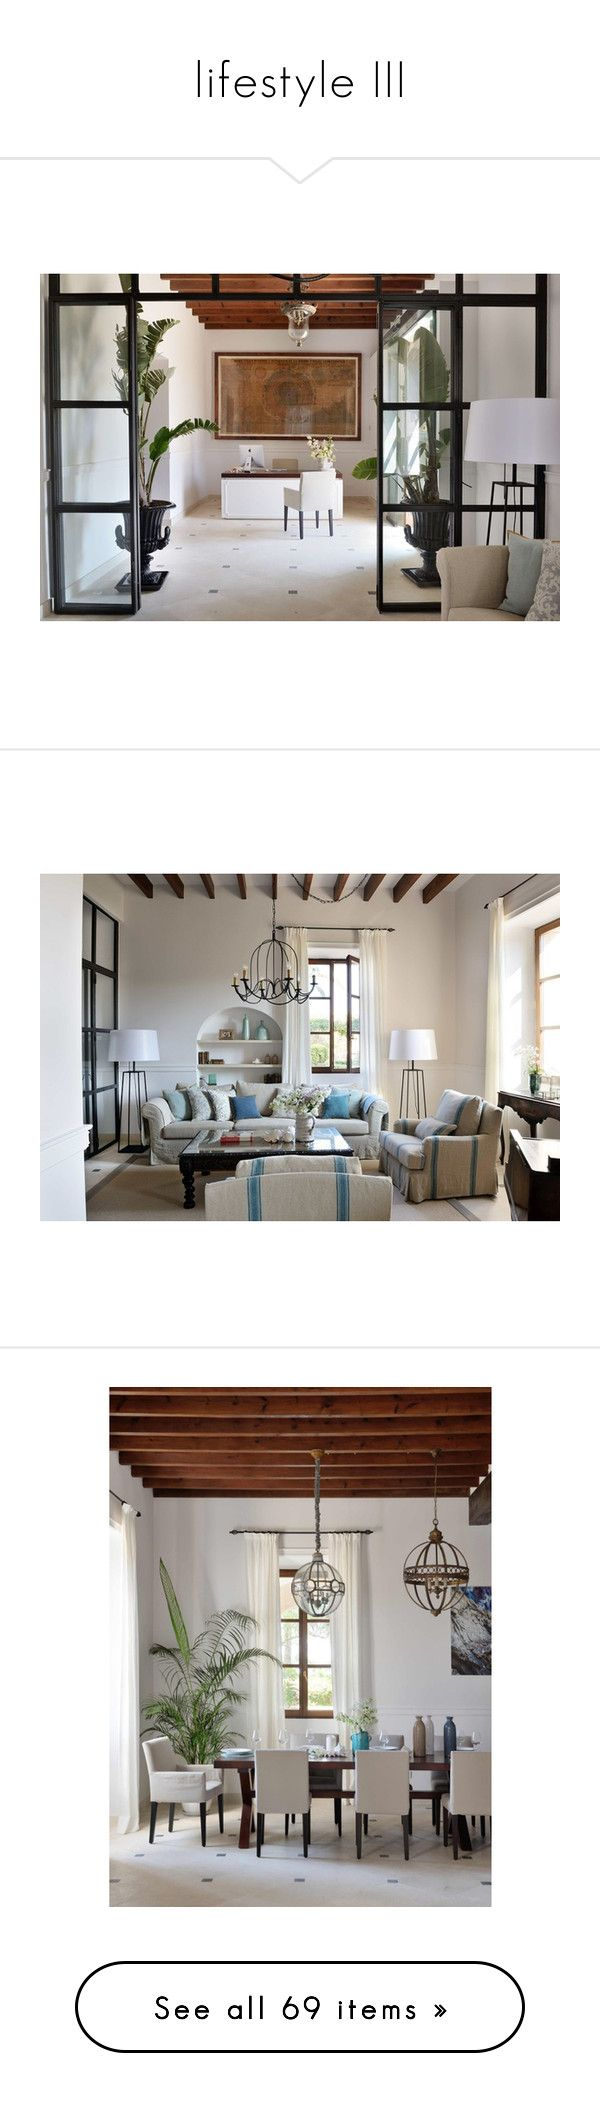 lifestyle III by viandy liked on Polyvore featuring home